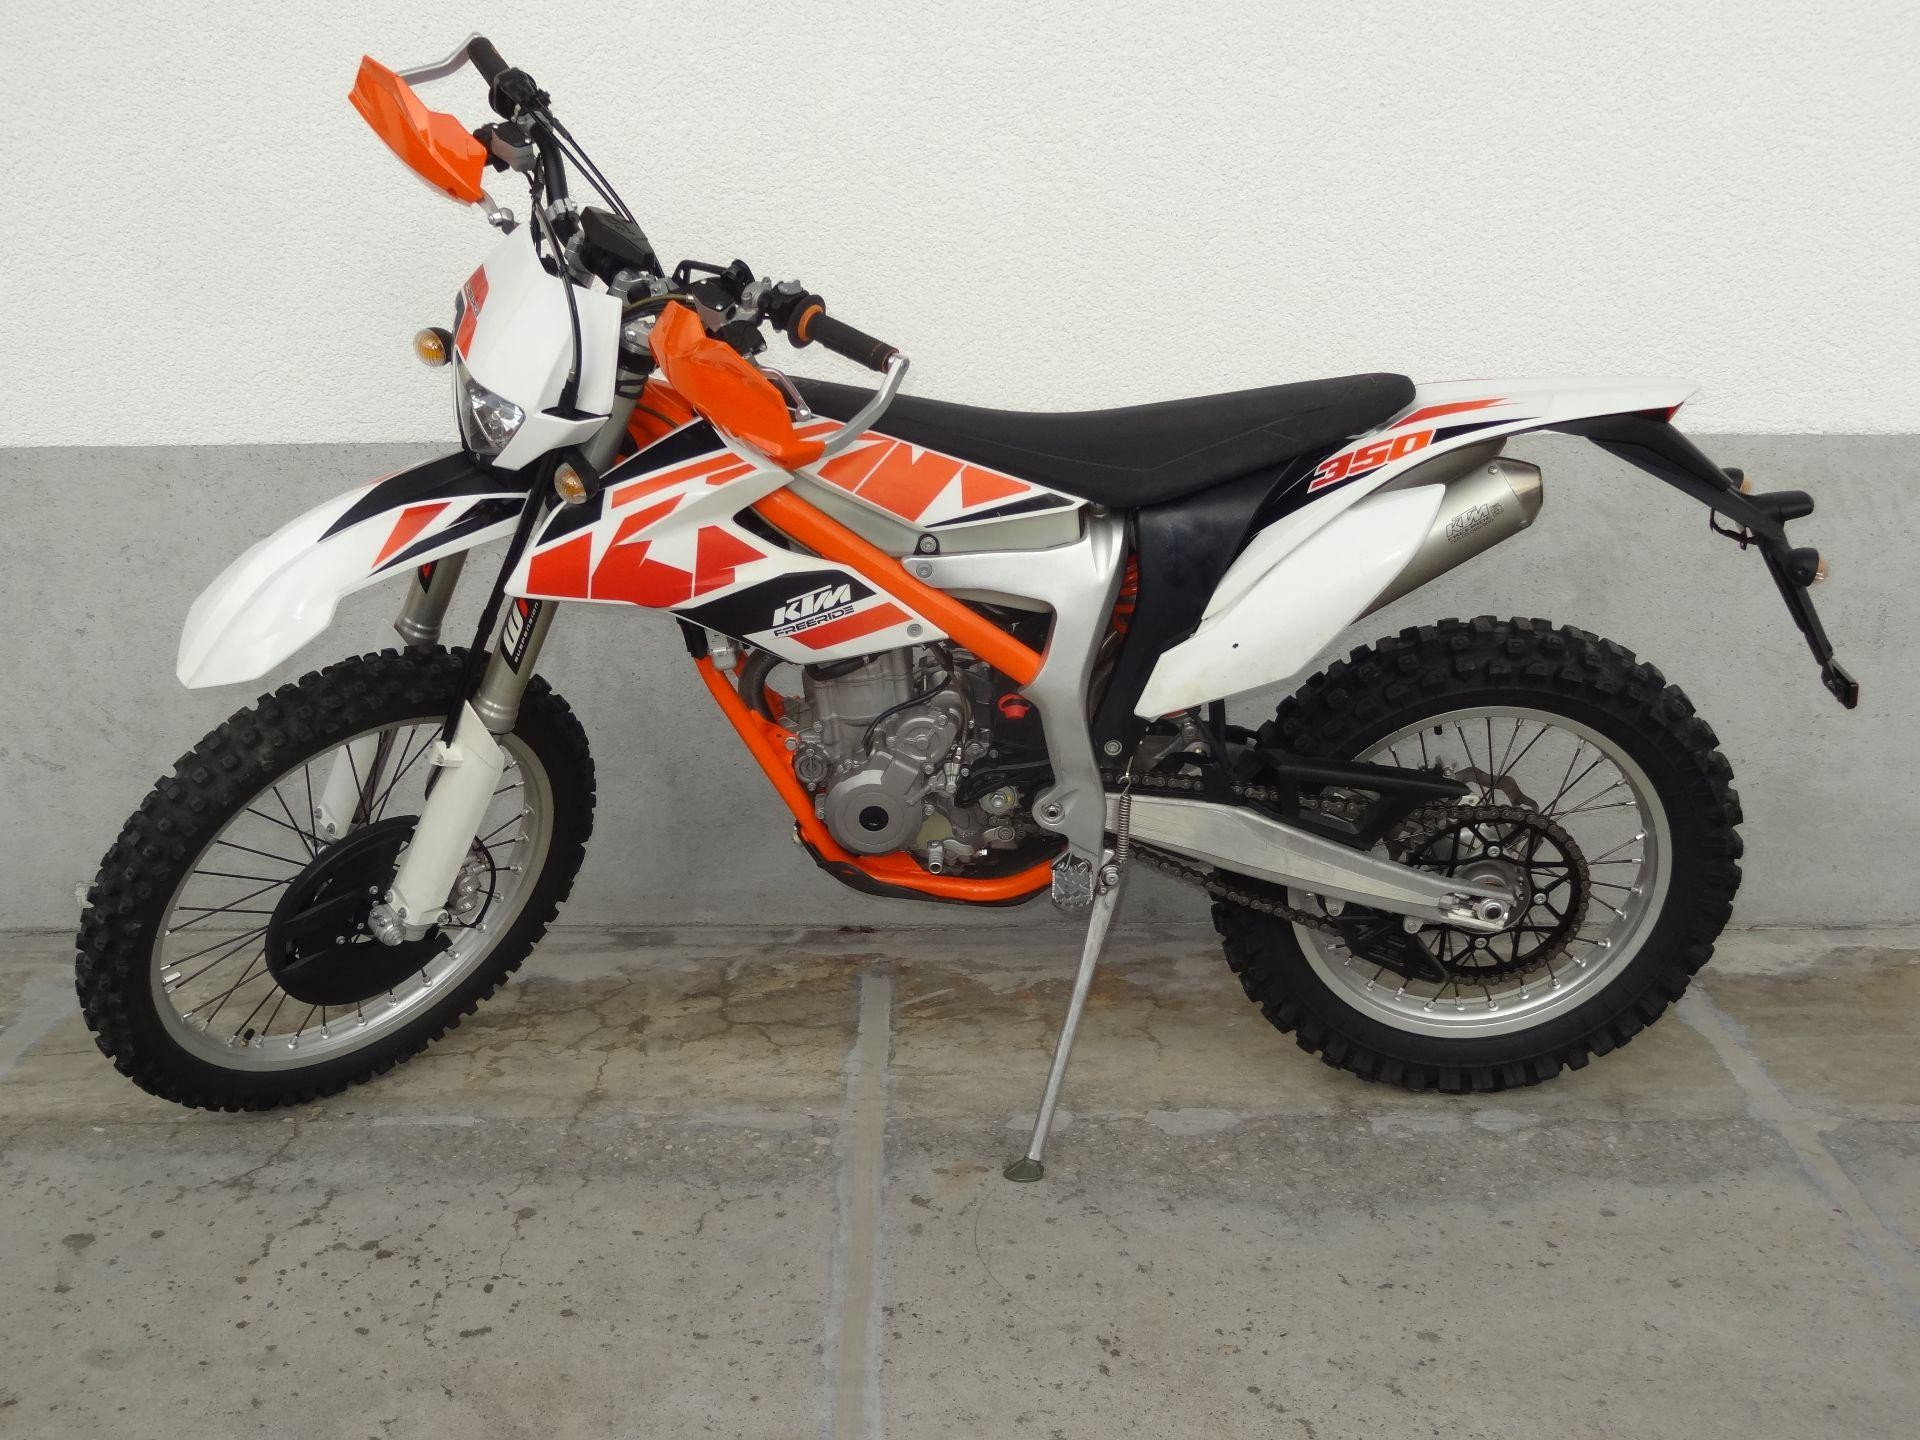 moto occasions acheter ktm 350 freeride 4t ktm service m riken. Black Bedroom Furniture Sets. Home Design Ideas